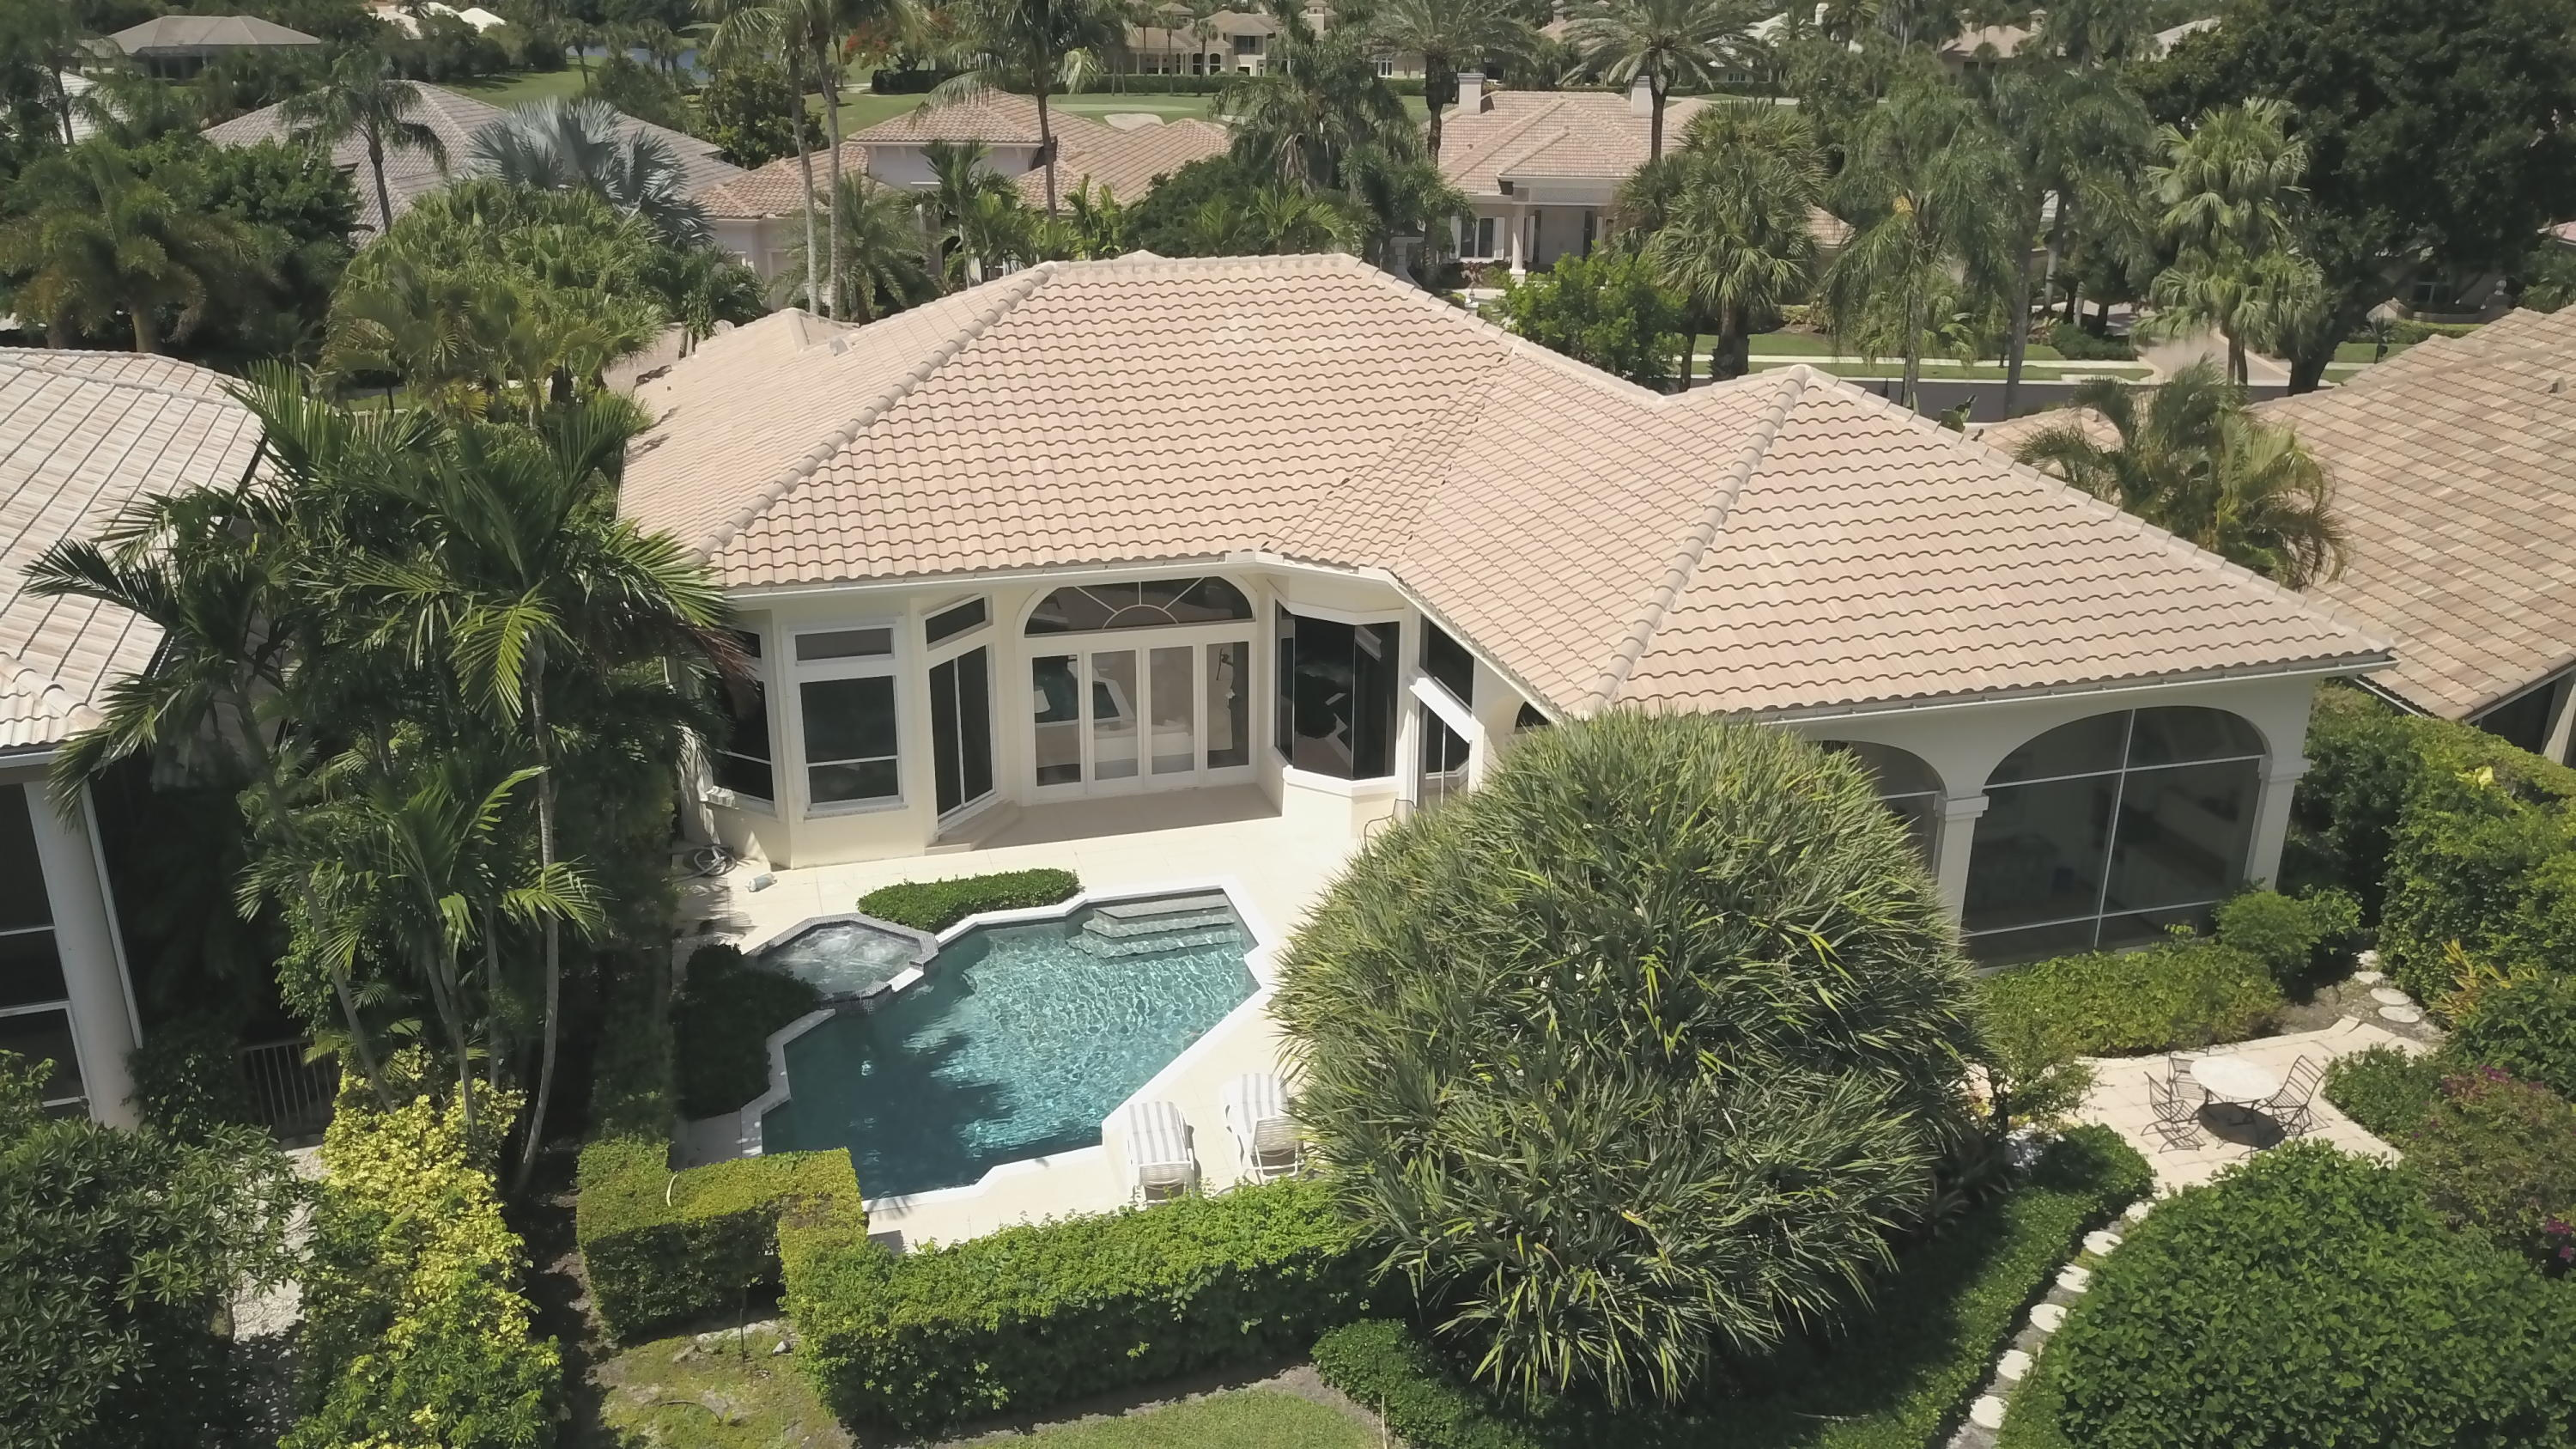 BALLENISLES PALM BEACH GARDENS FLORIDA